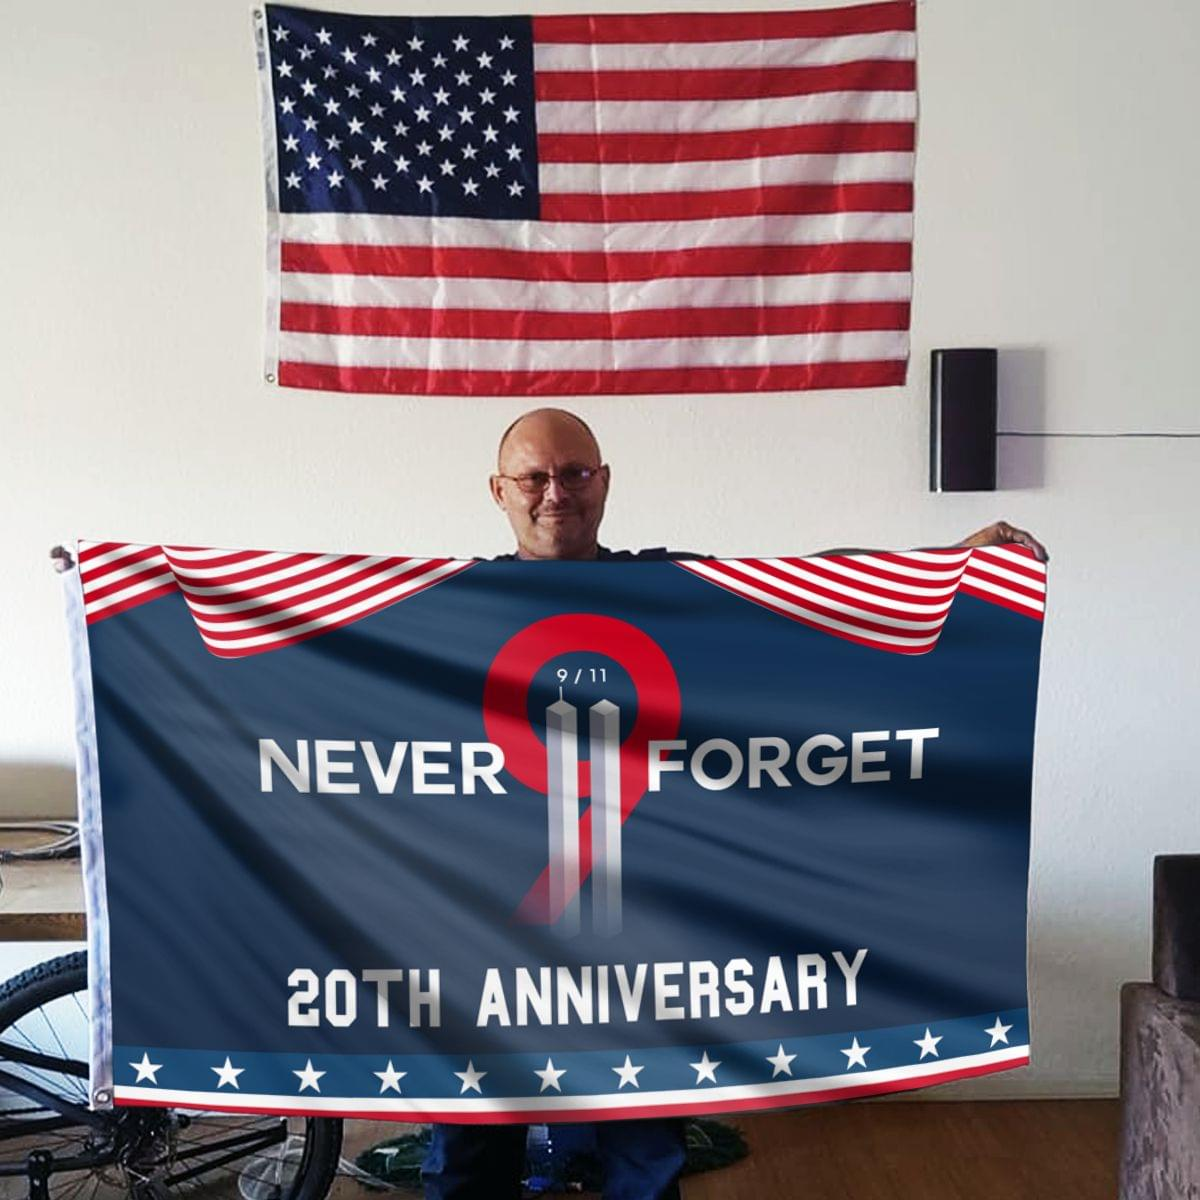 Never Forget 9.11 Two Towers - 20th Anniversary Flag